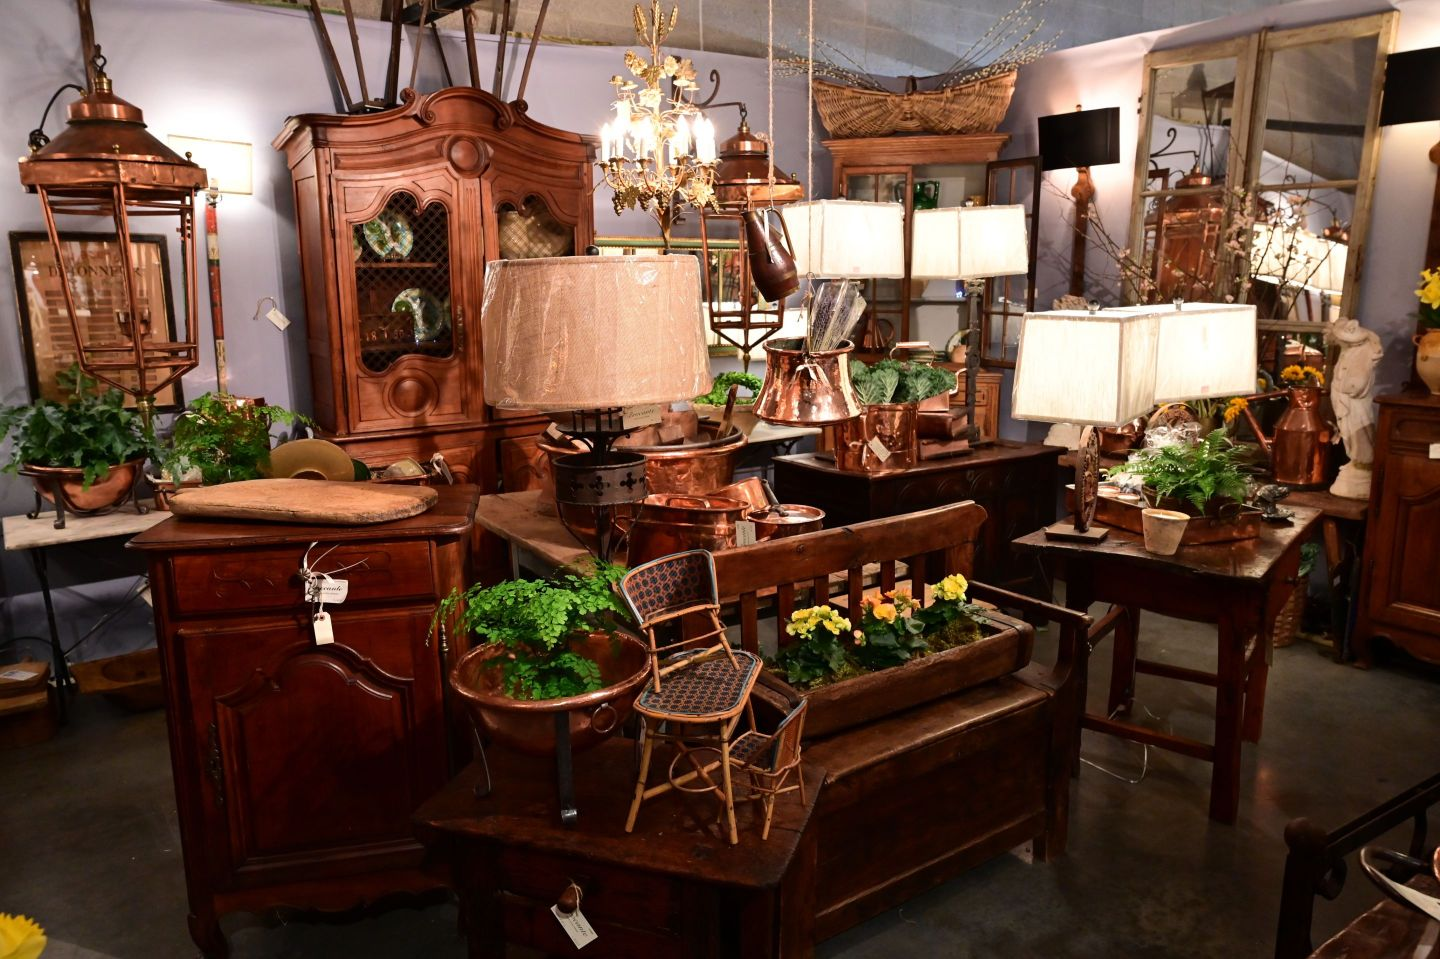 PeytonHoge-photos-049-1440x959 Southern Exposure with Black Southern Belle: Nashville Antiques & Garden Show